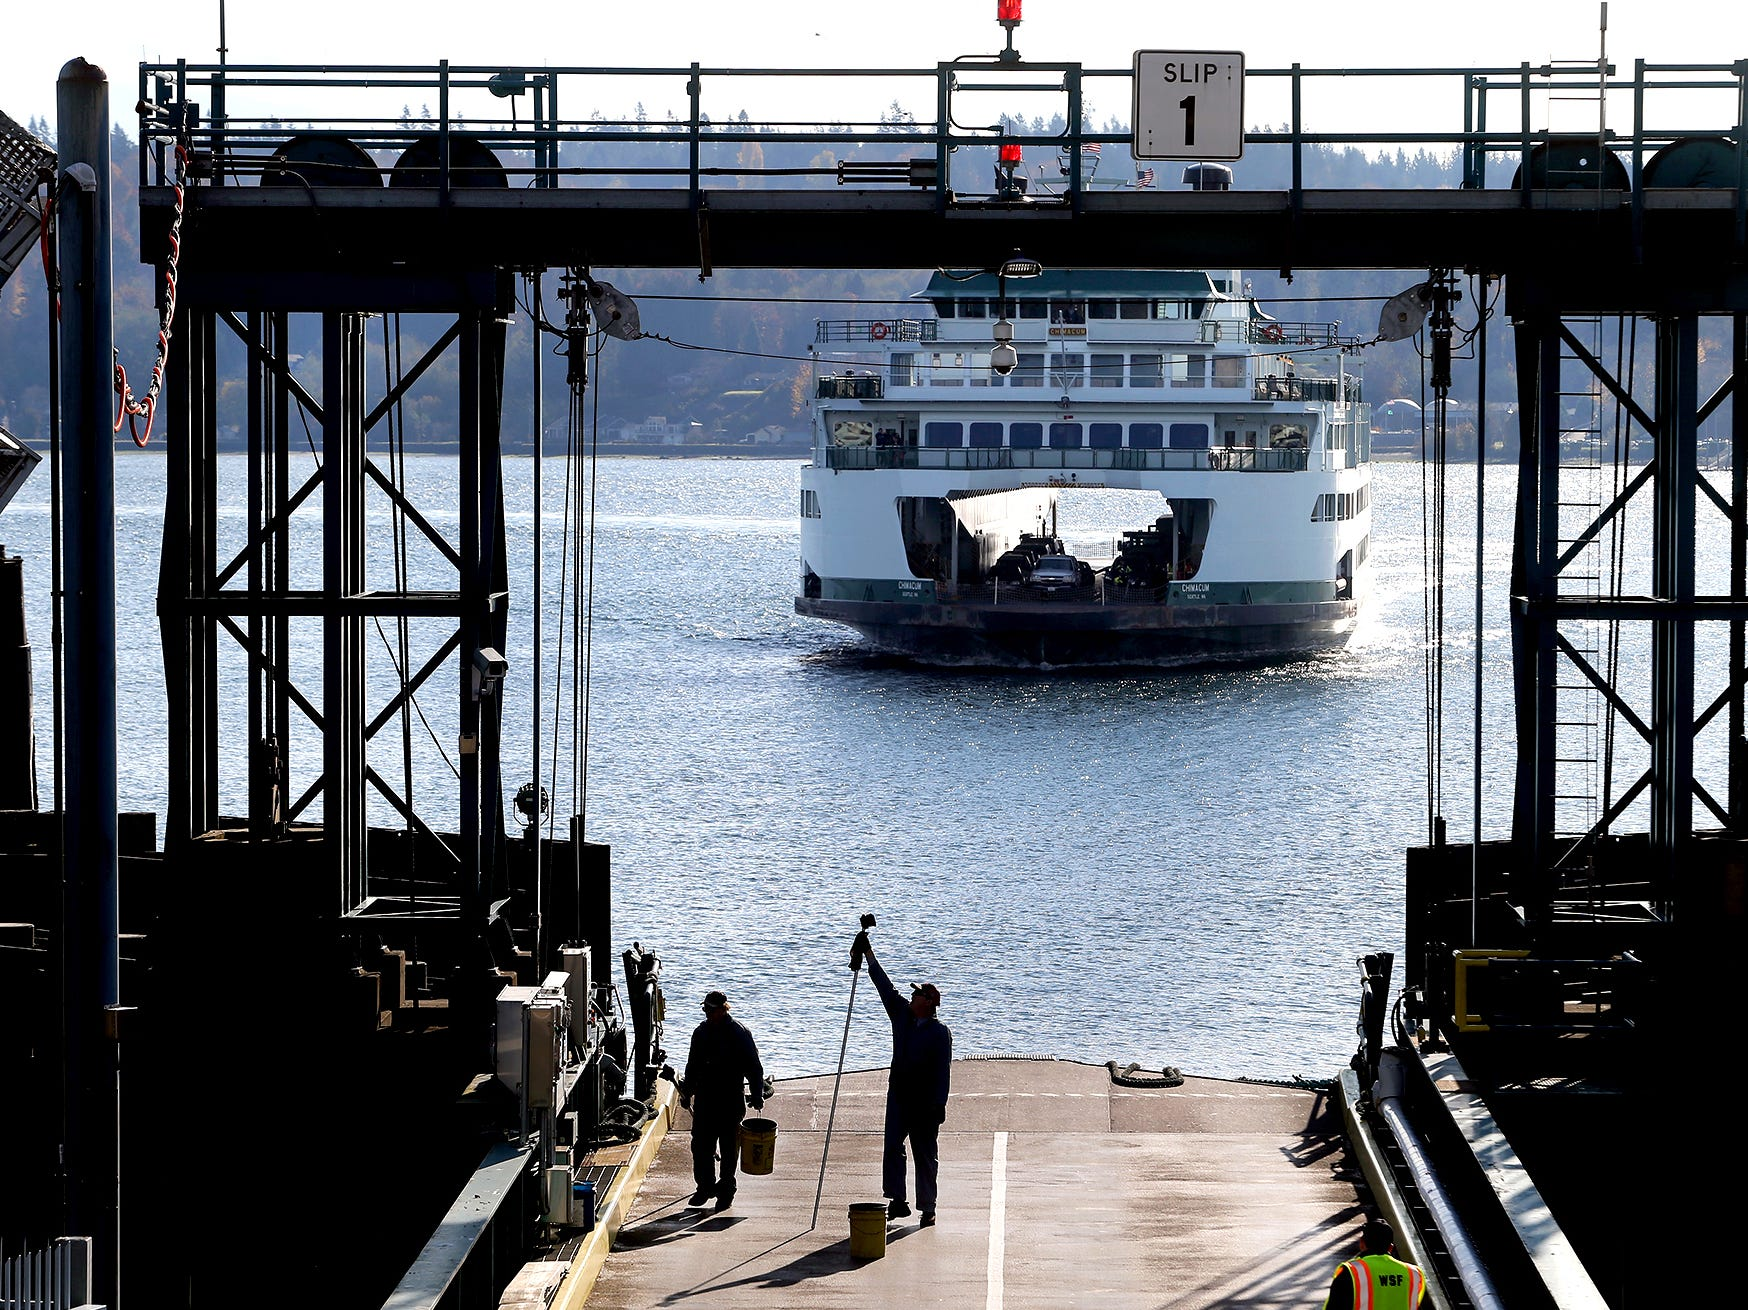 Workers finish on slip number 1 at the Bremerton Ferry Terminal on Wednesday, November 7, 2018, as the Chimacum approaches.